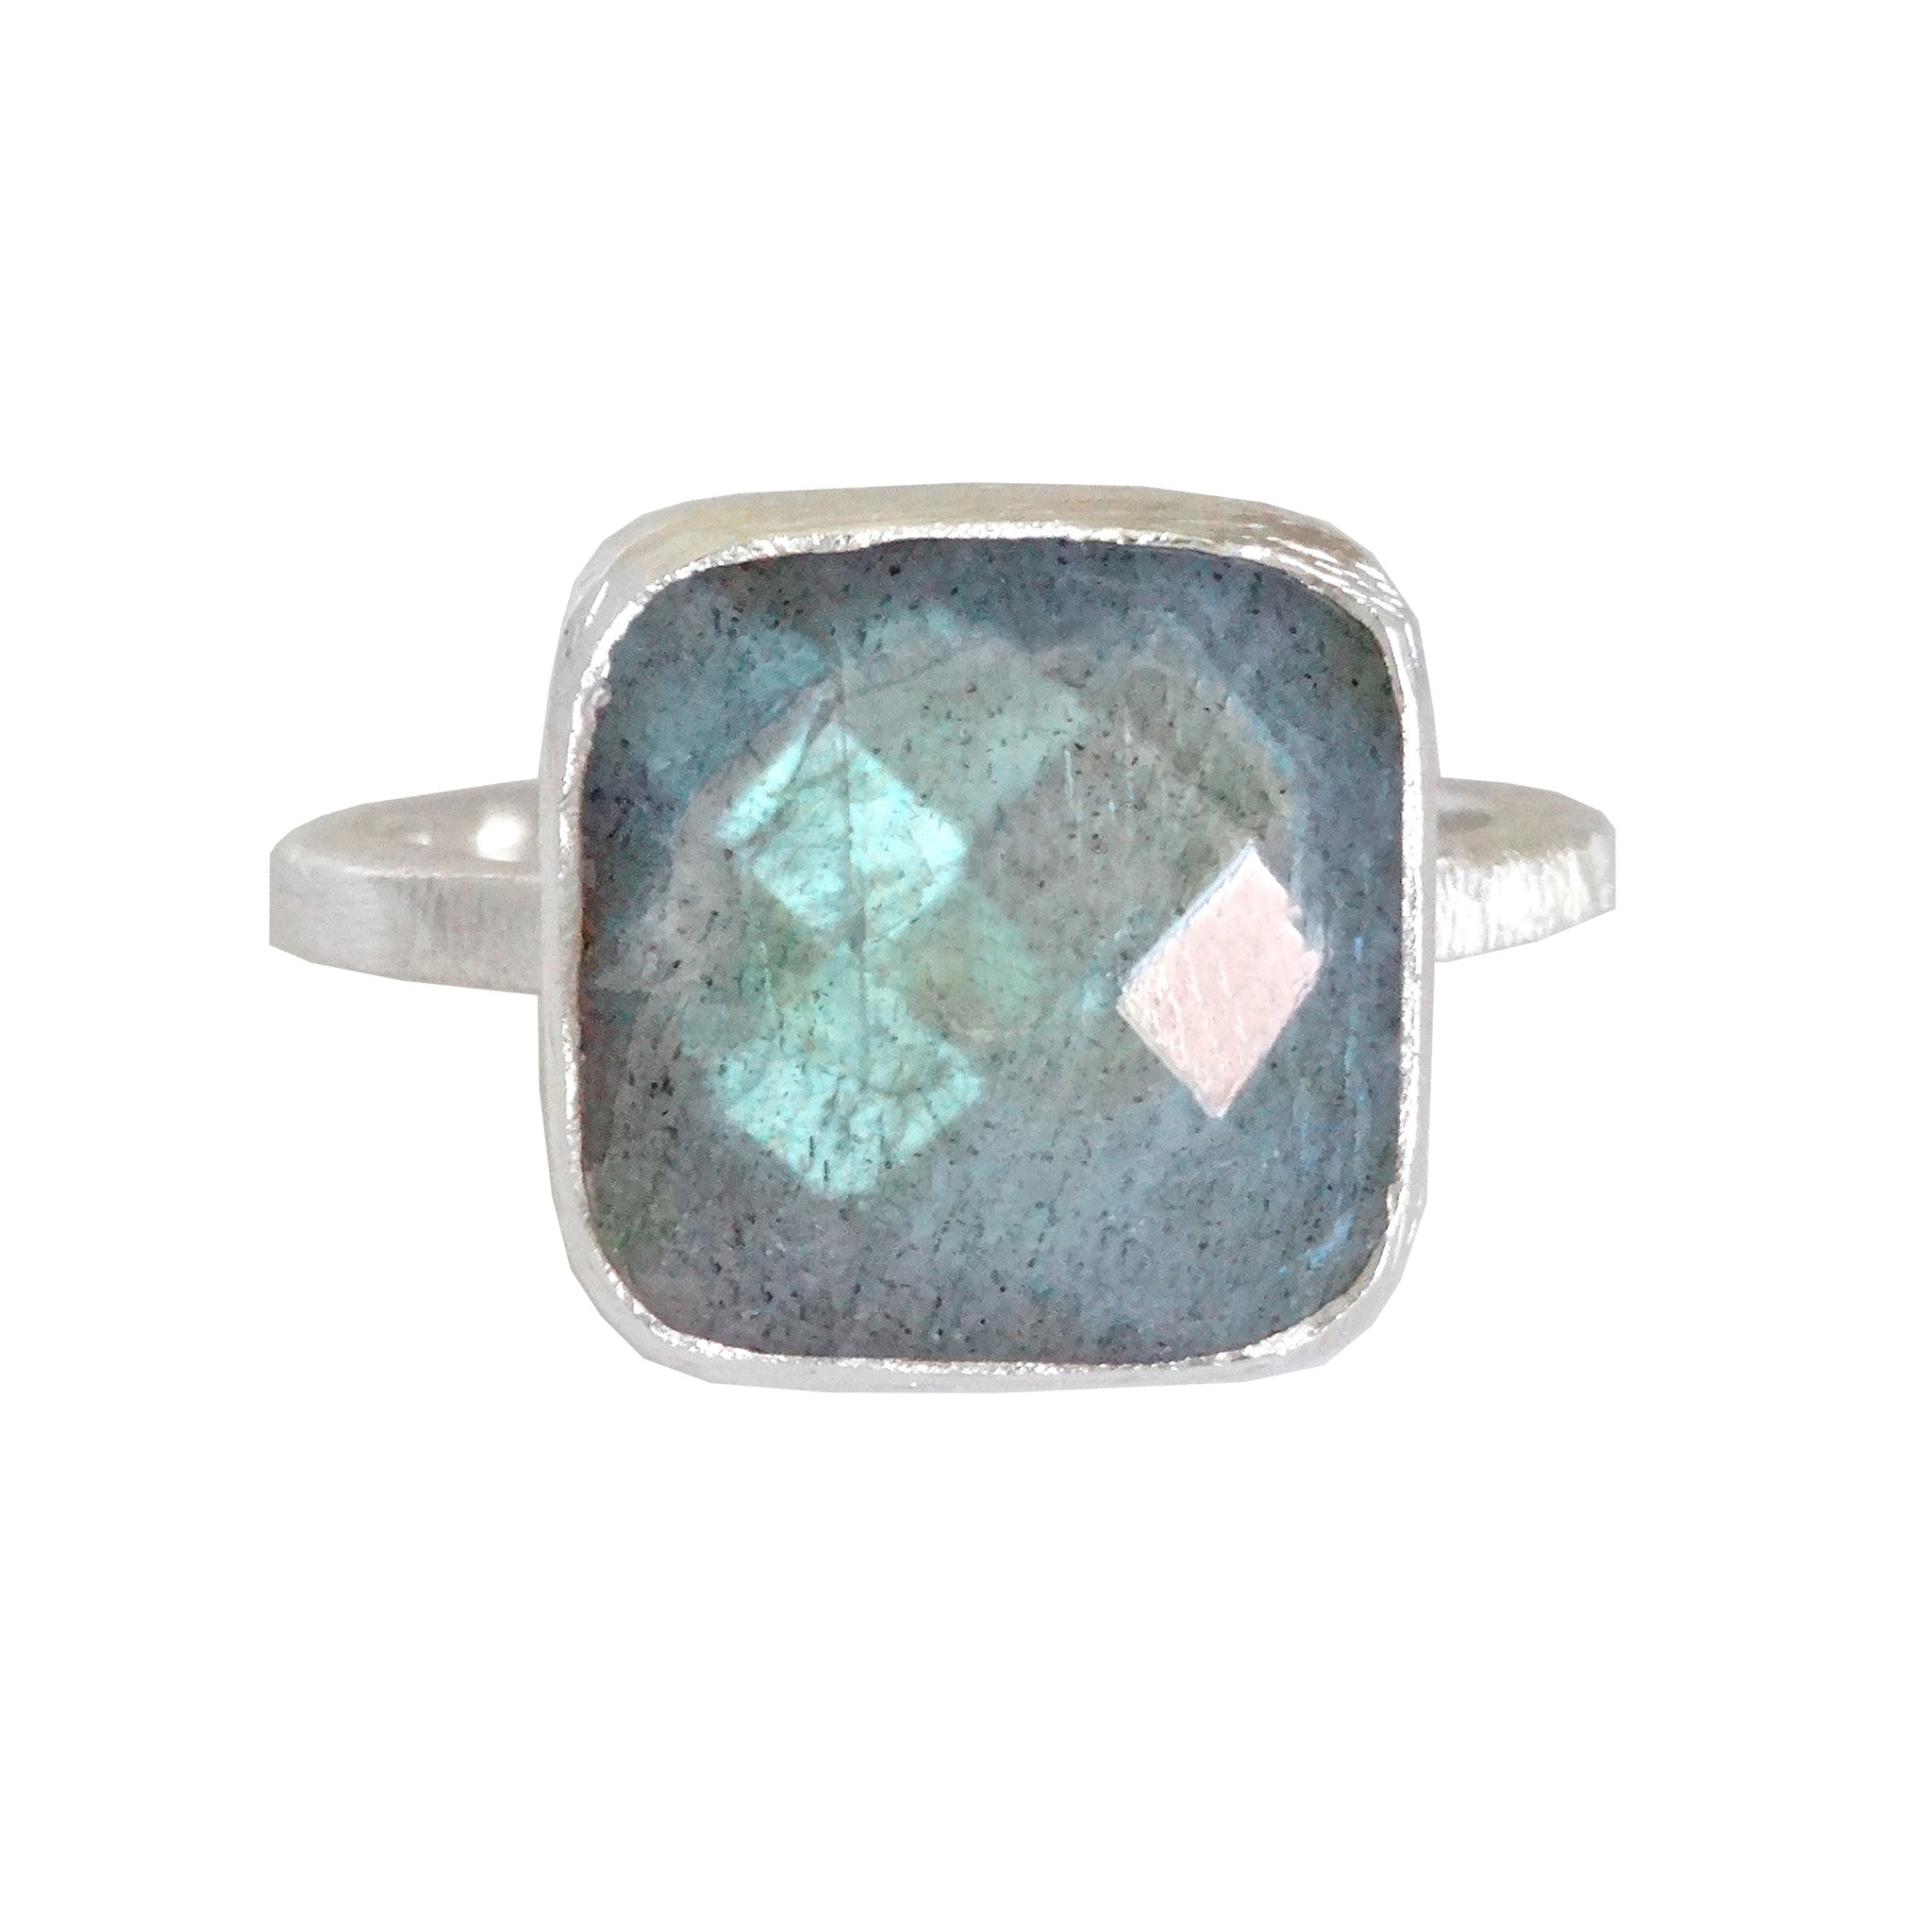 talismanic s size jewelry in rings image ring products women collections all teal granite silver turquoise sugilite and